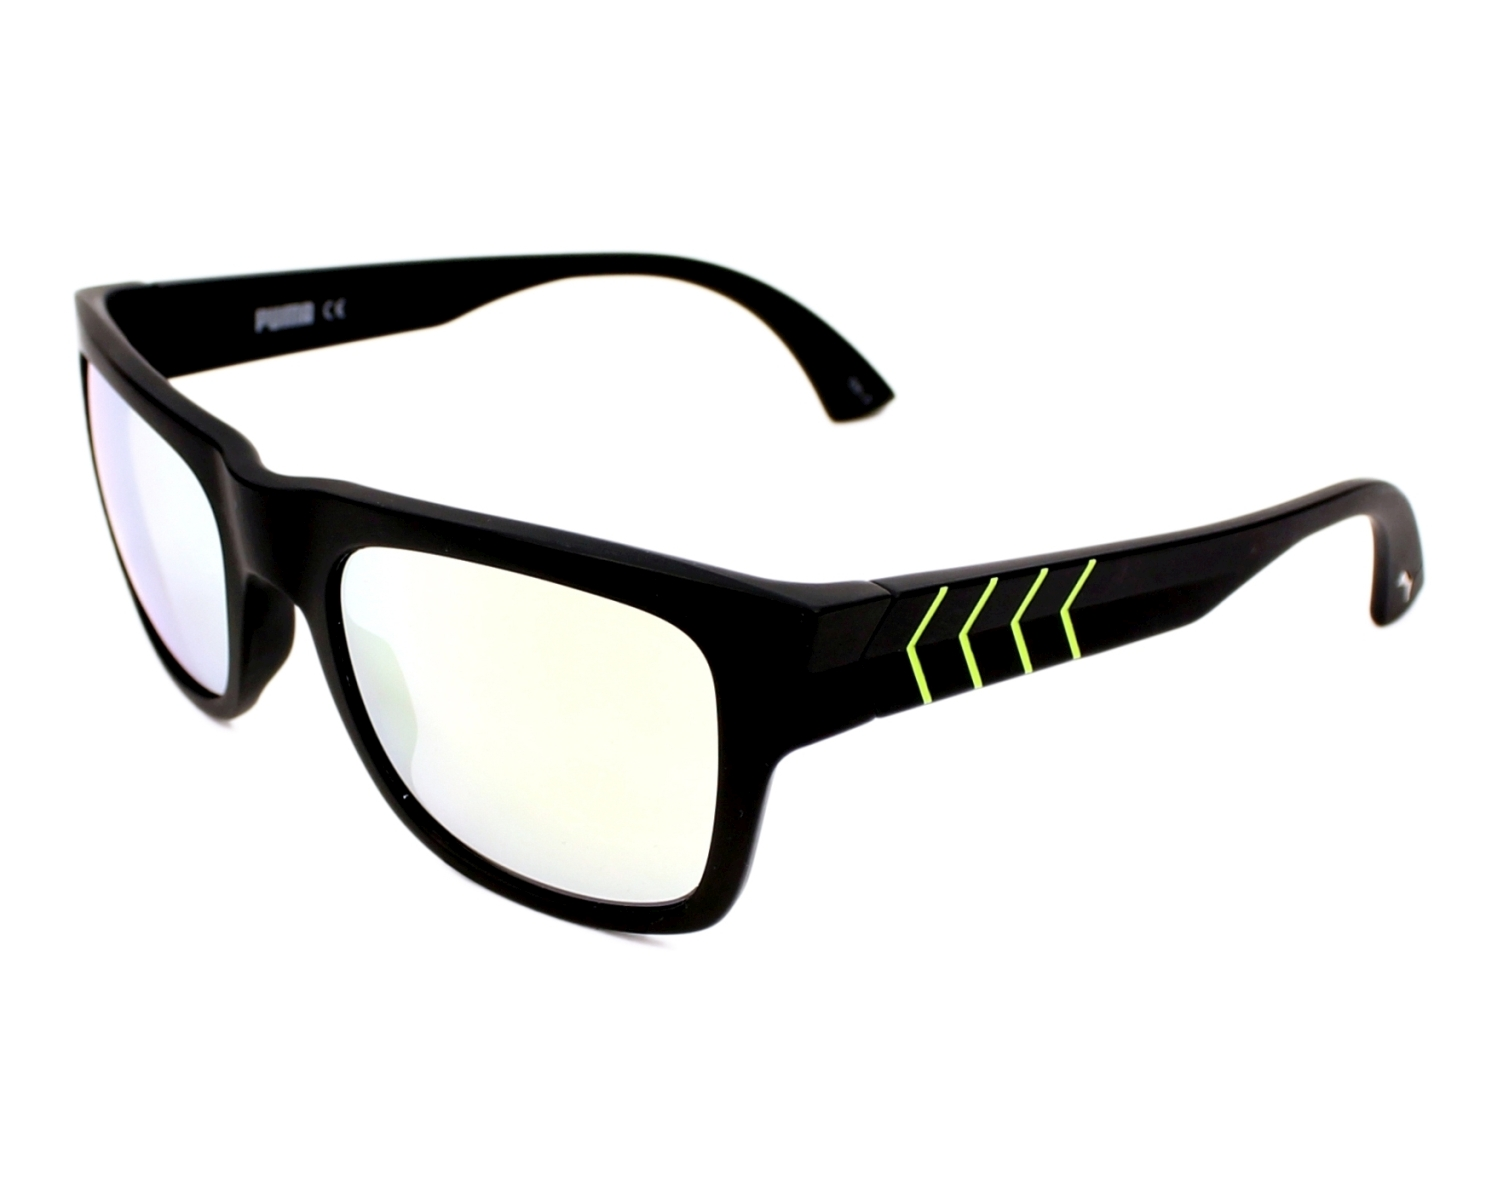 Glasses Frames Adjustment : Puma sunglasses PU0038S 002 53 Visionet